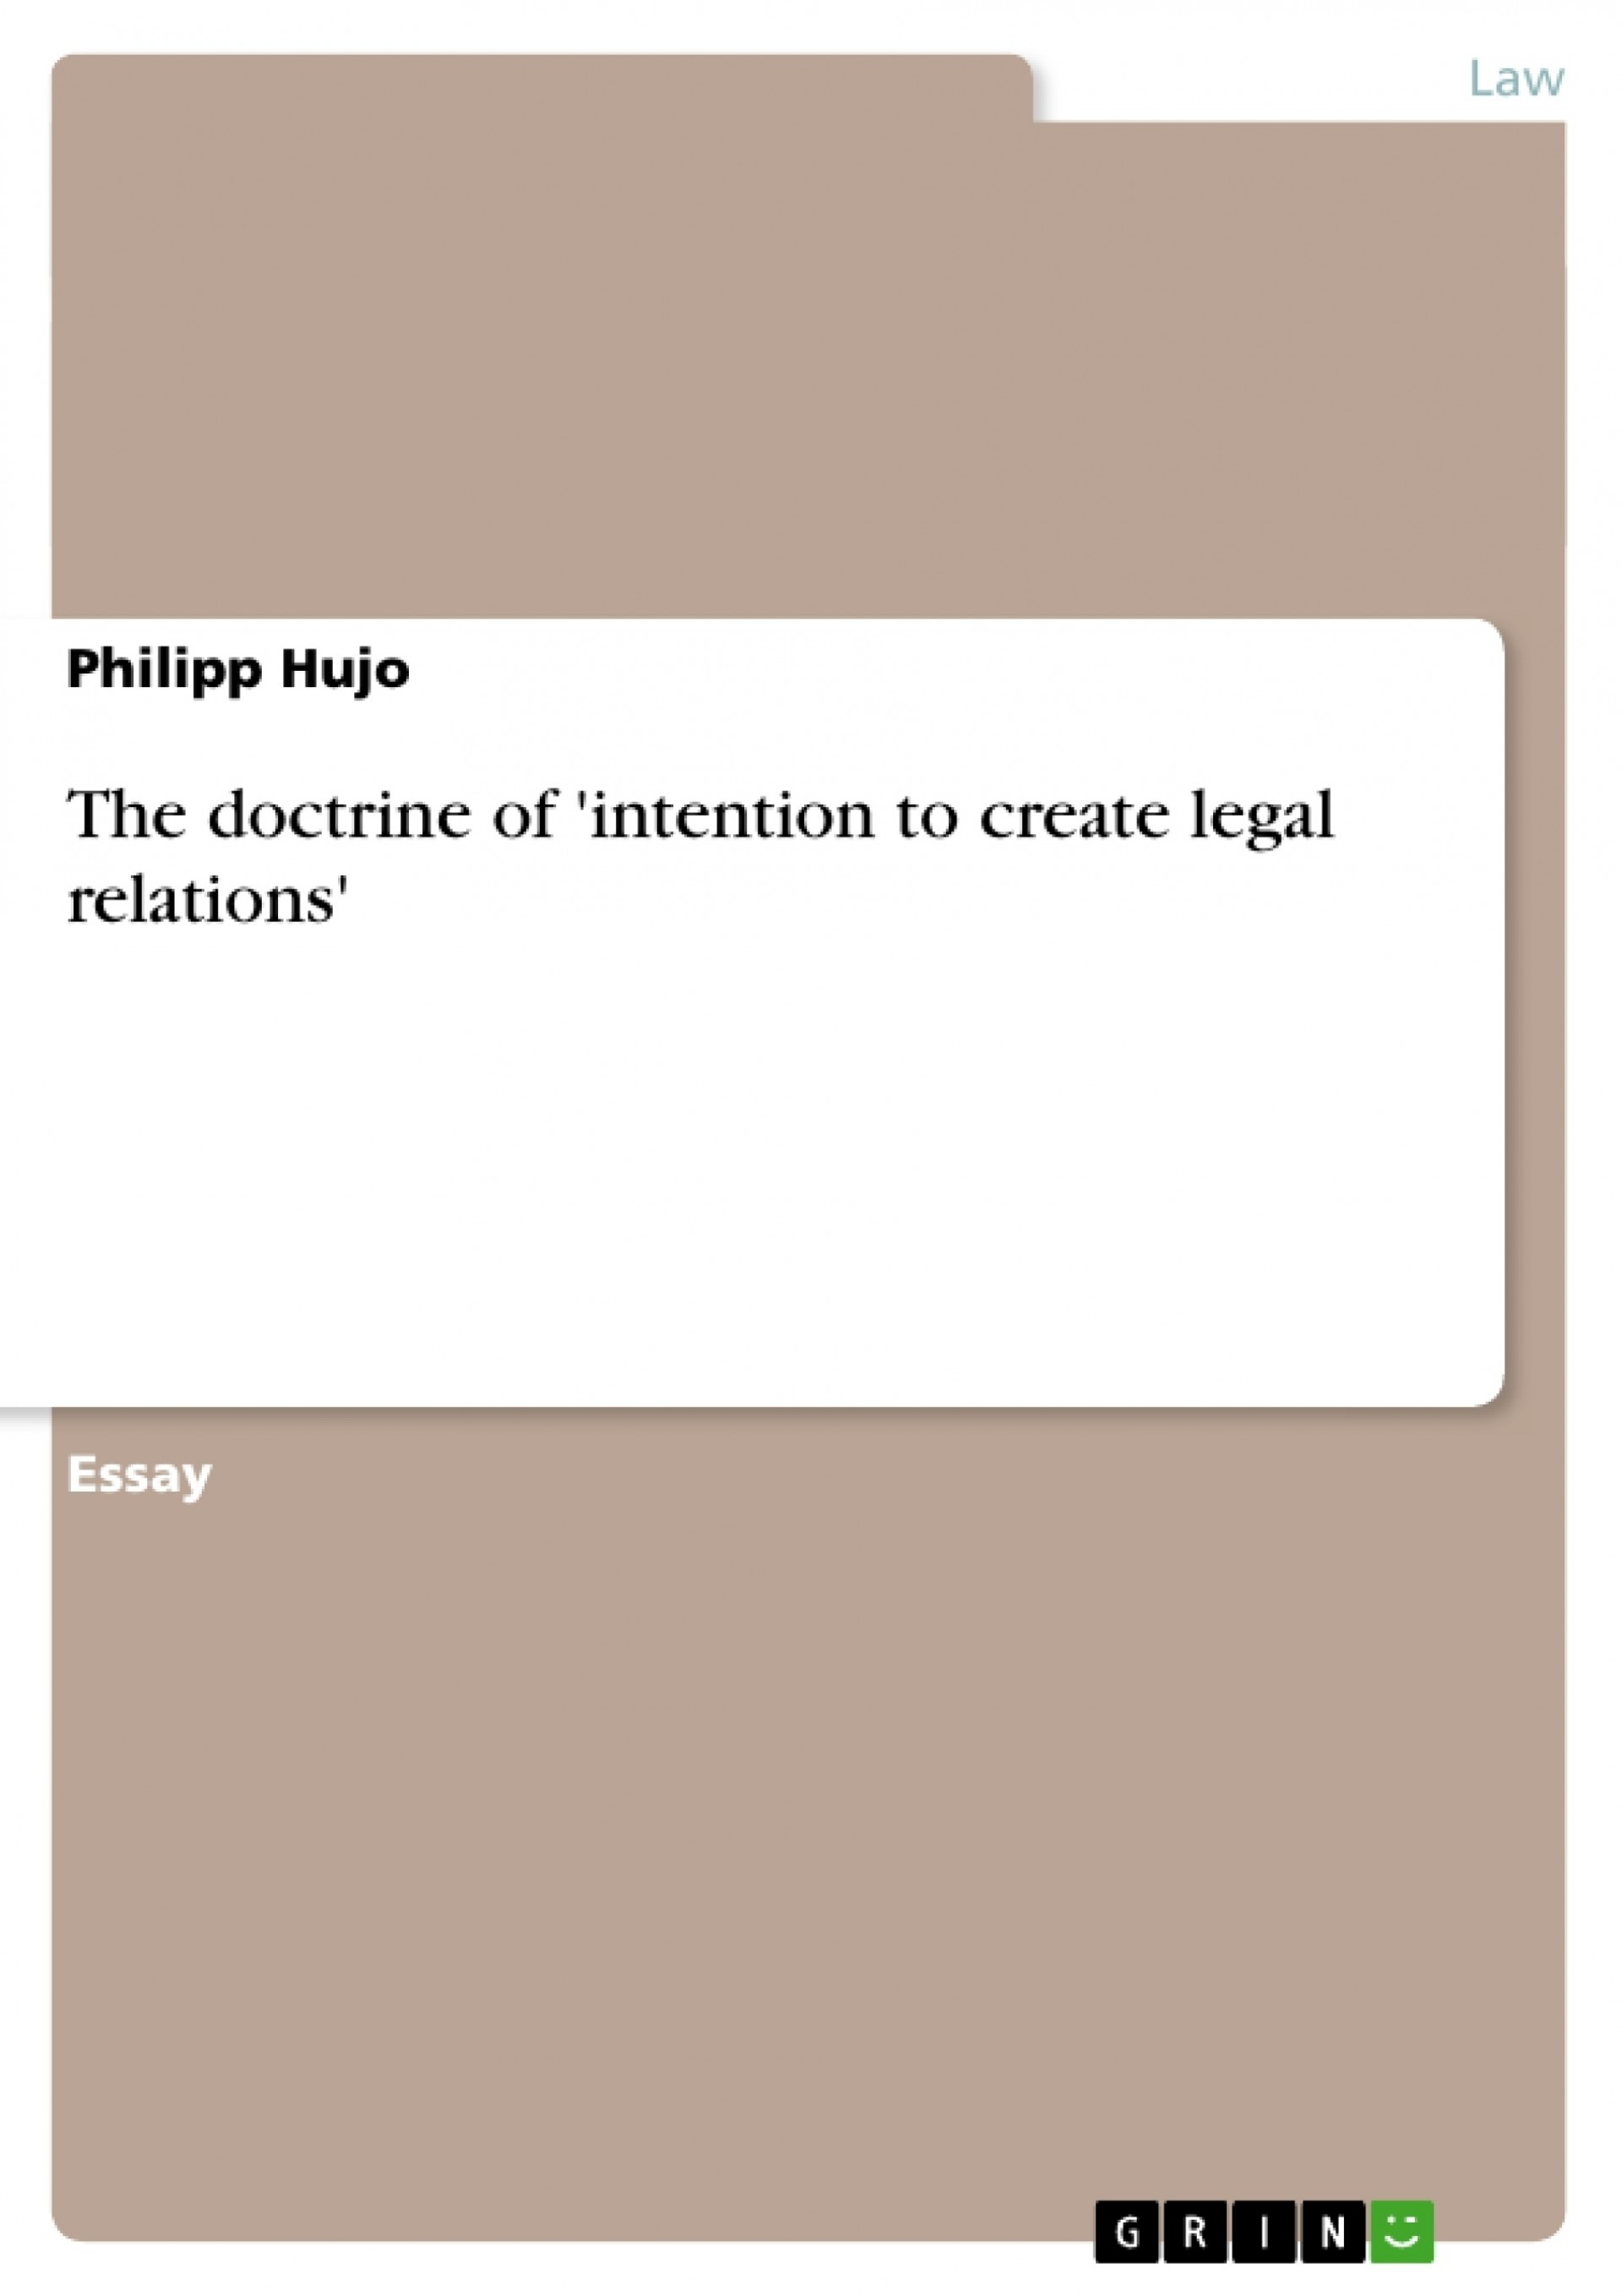 005 109929 0 Essay Example Intention To Create Legal Unbelievable Relations 1920